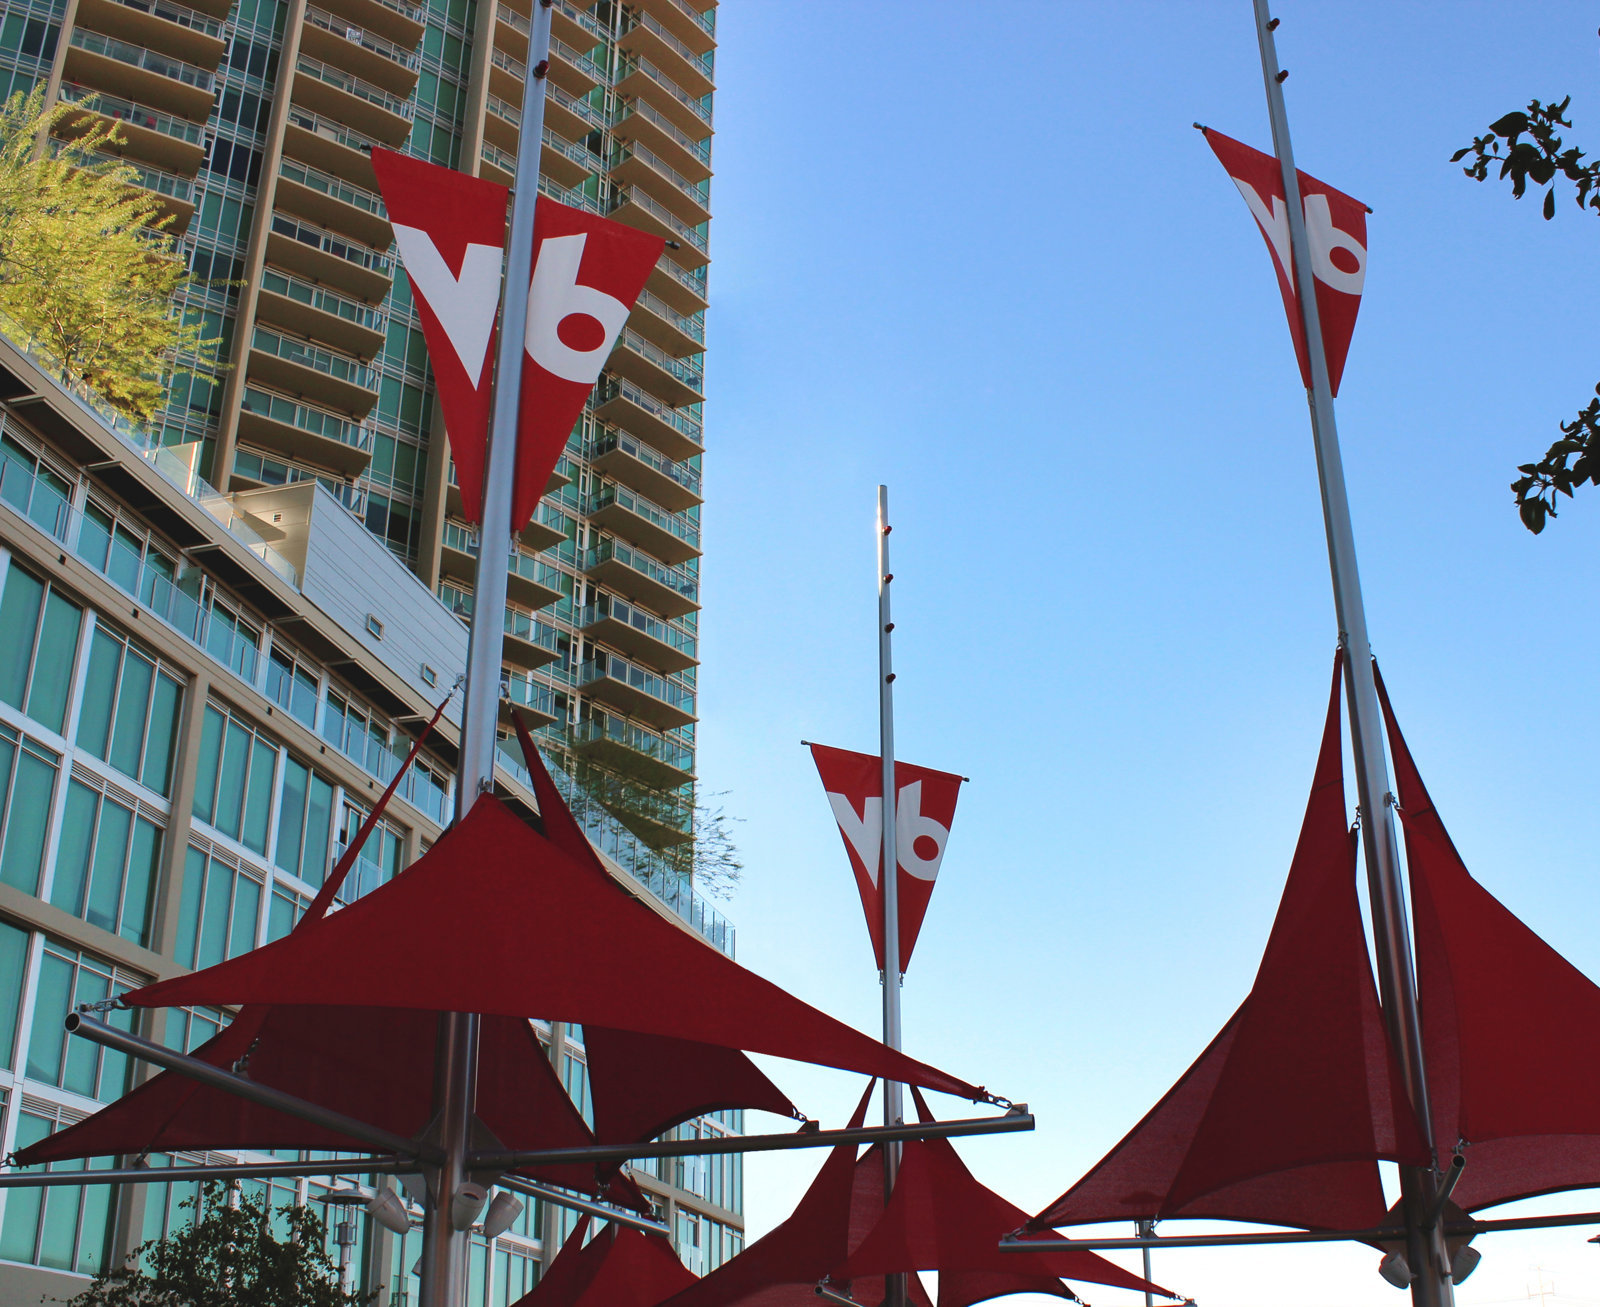 Residents enjoy the courtyard's park like flagpole installation. The flagpoles create shade with custom sails and have lighting and W6 elements to attract branding attention from Mill Avenue.